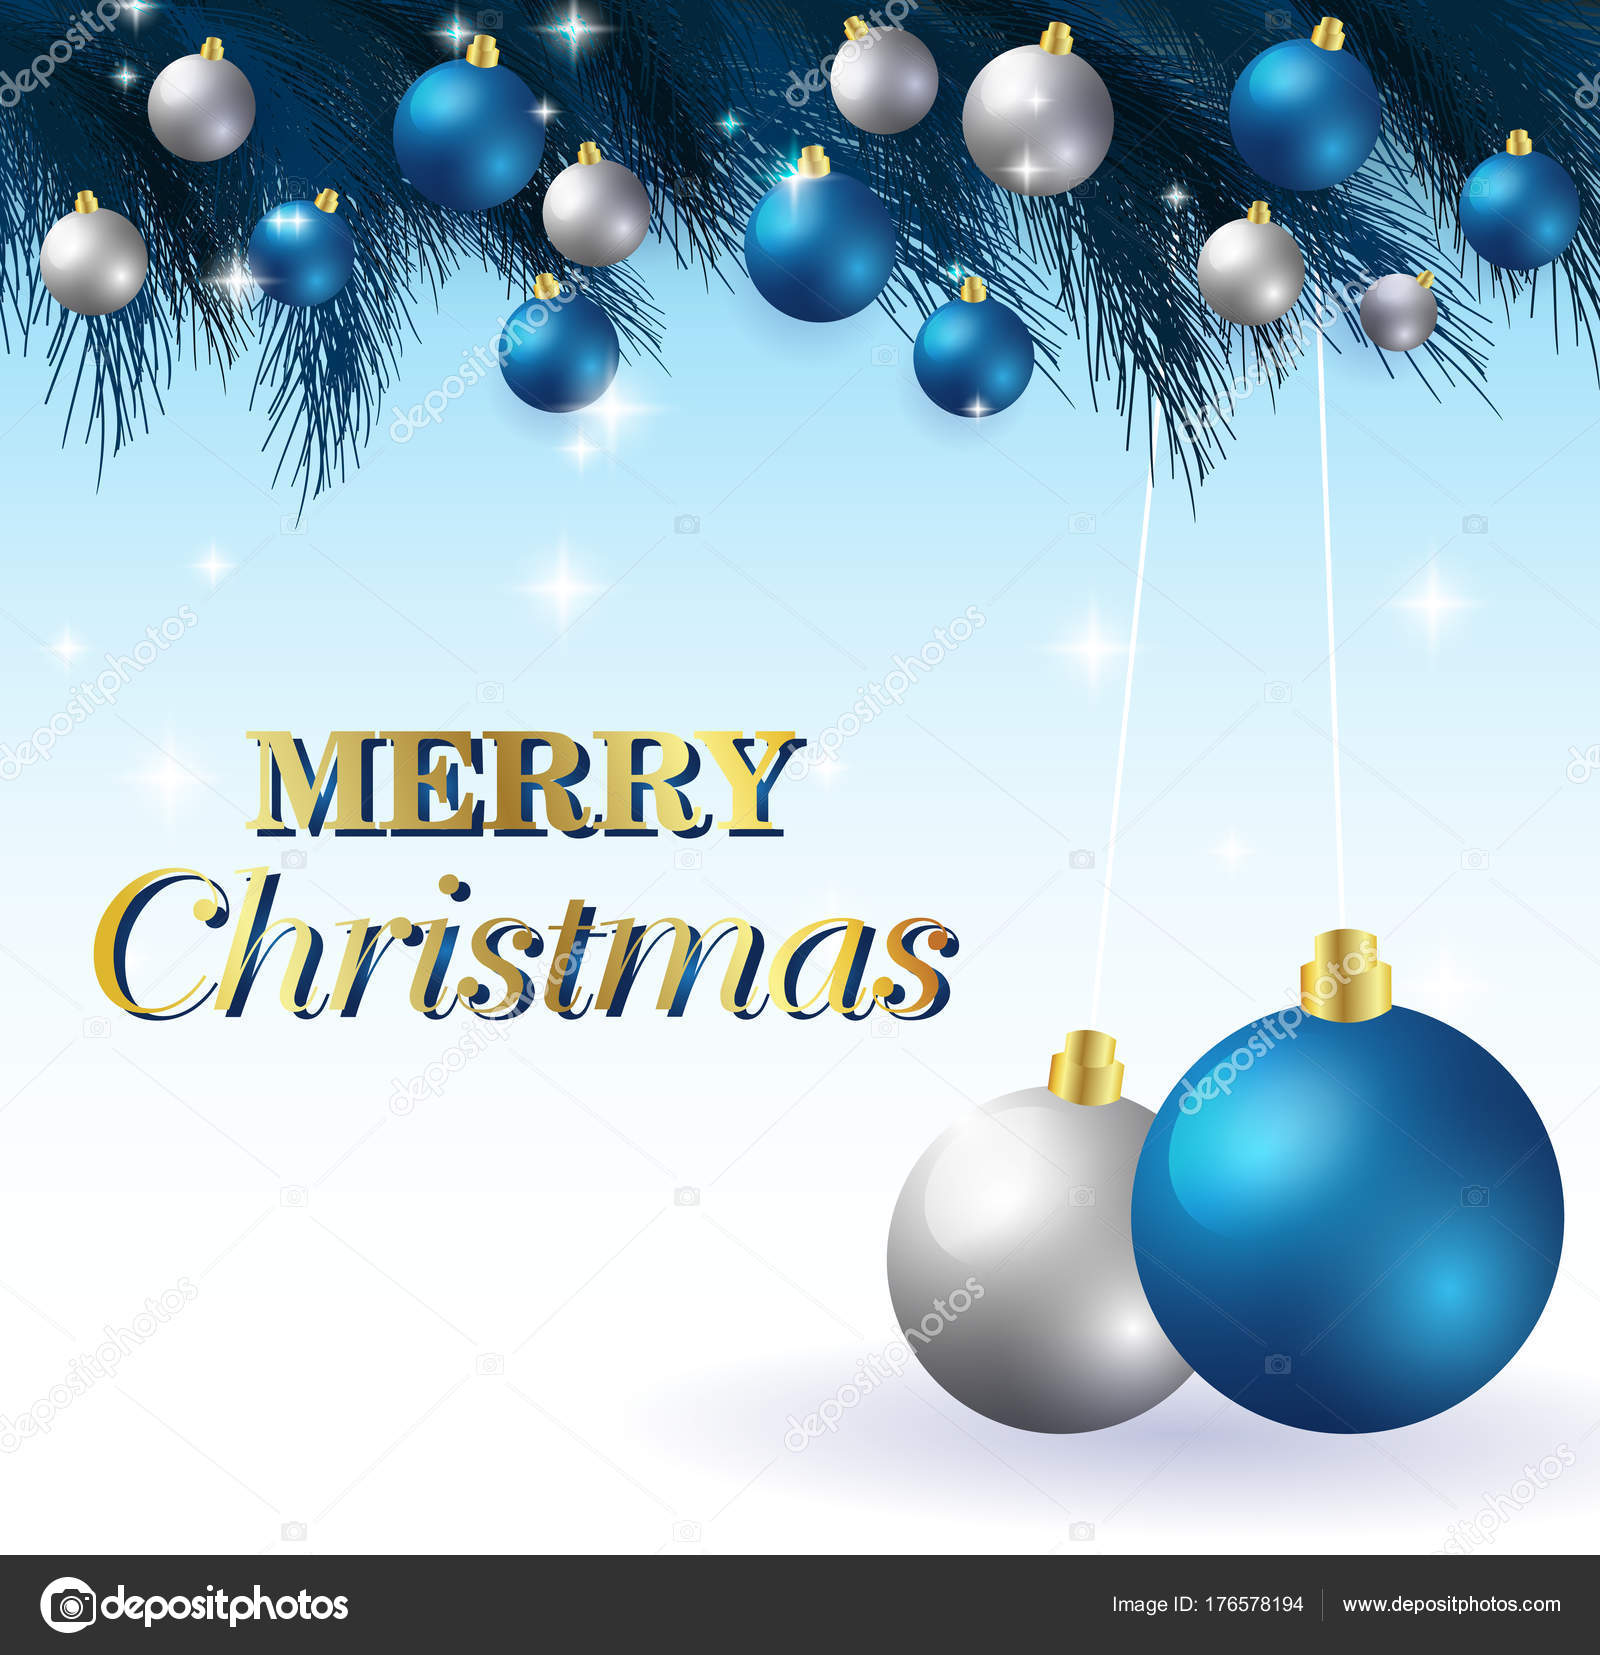 merry christmasnew year card and glitter decoration blue and white background with christmas